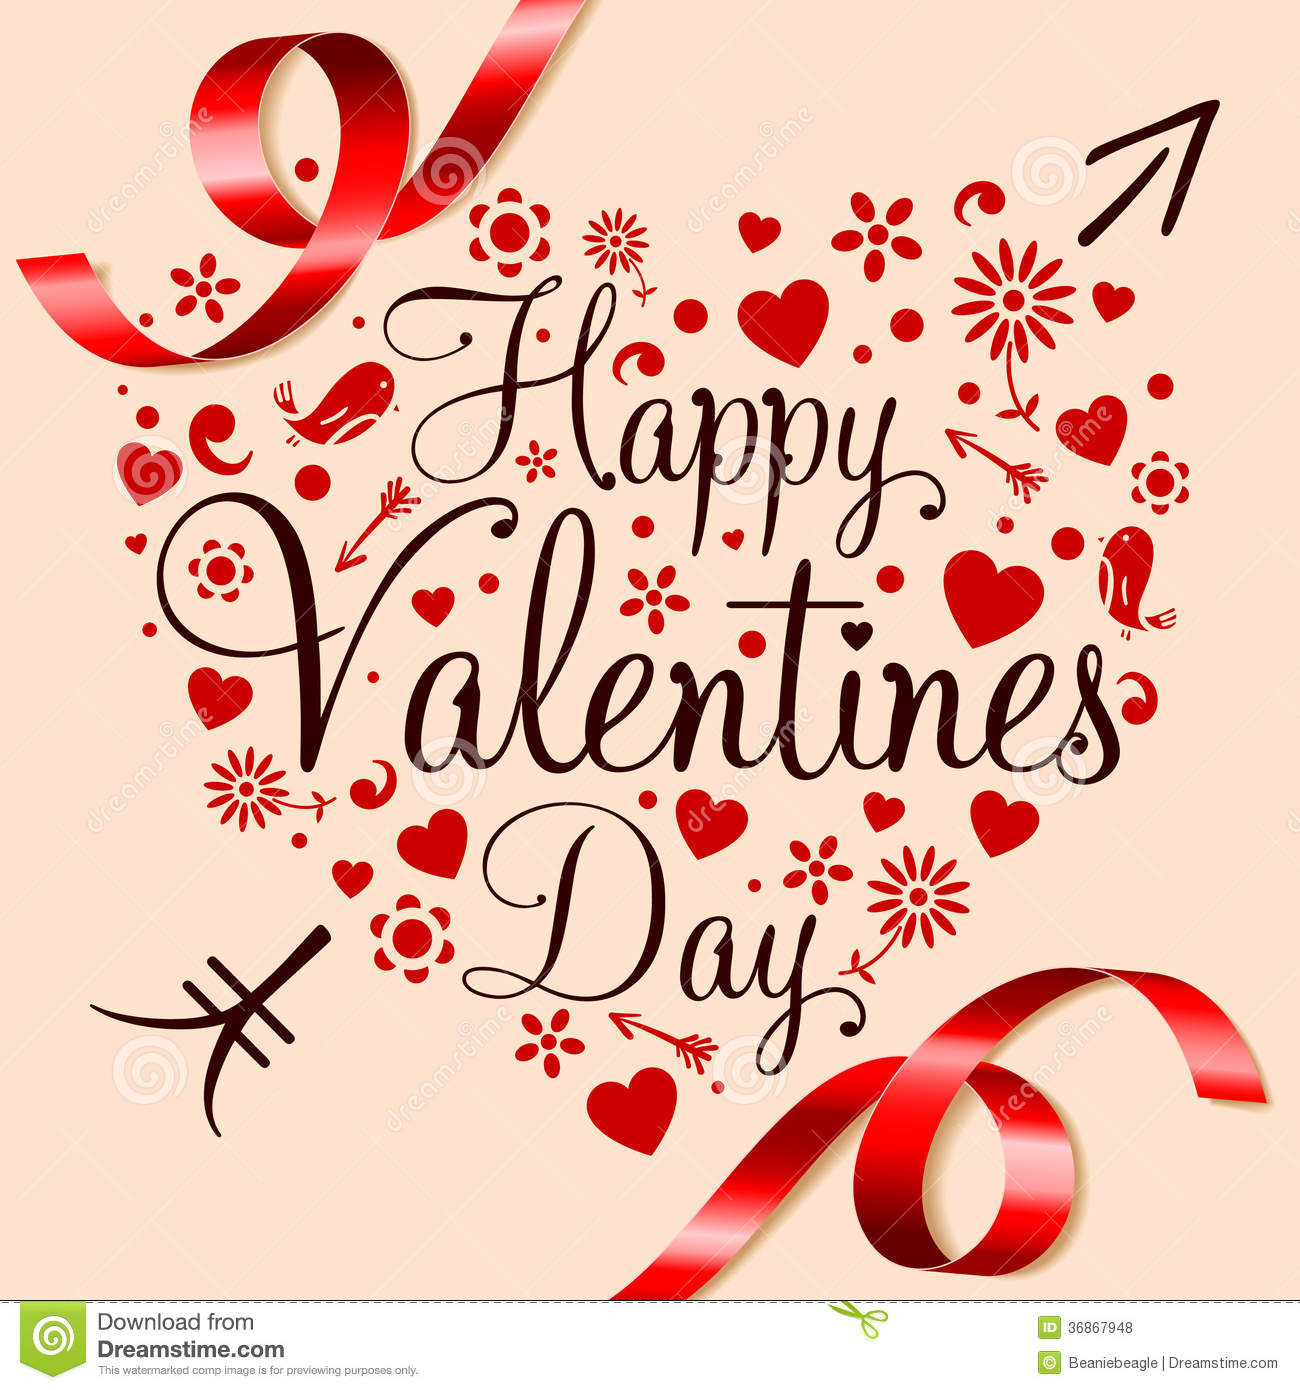 happy valentines day - Happy Valentines Day Pictures Free